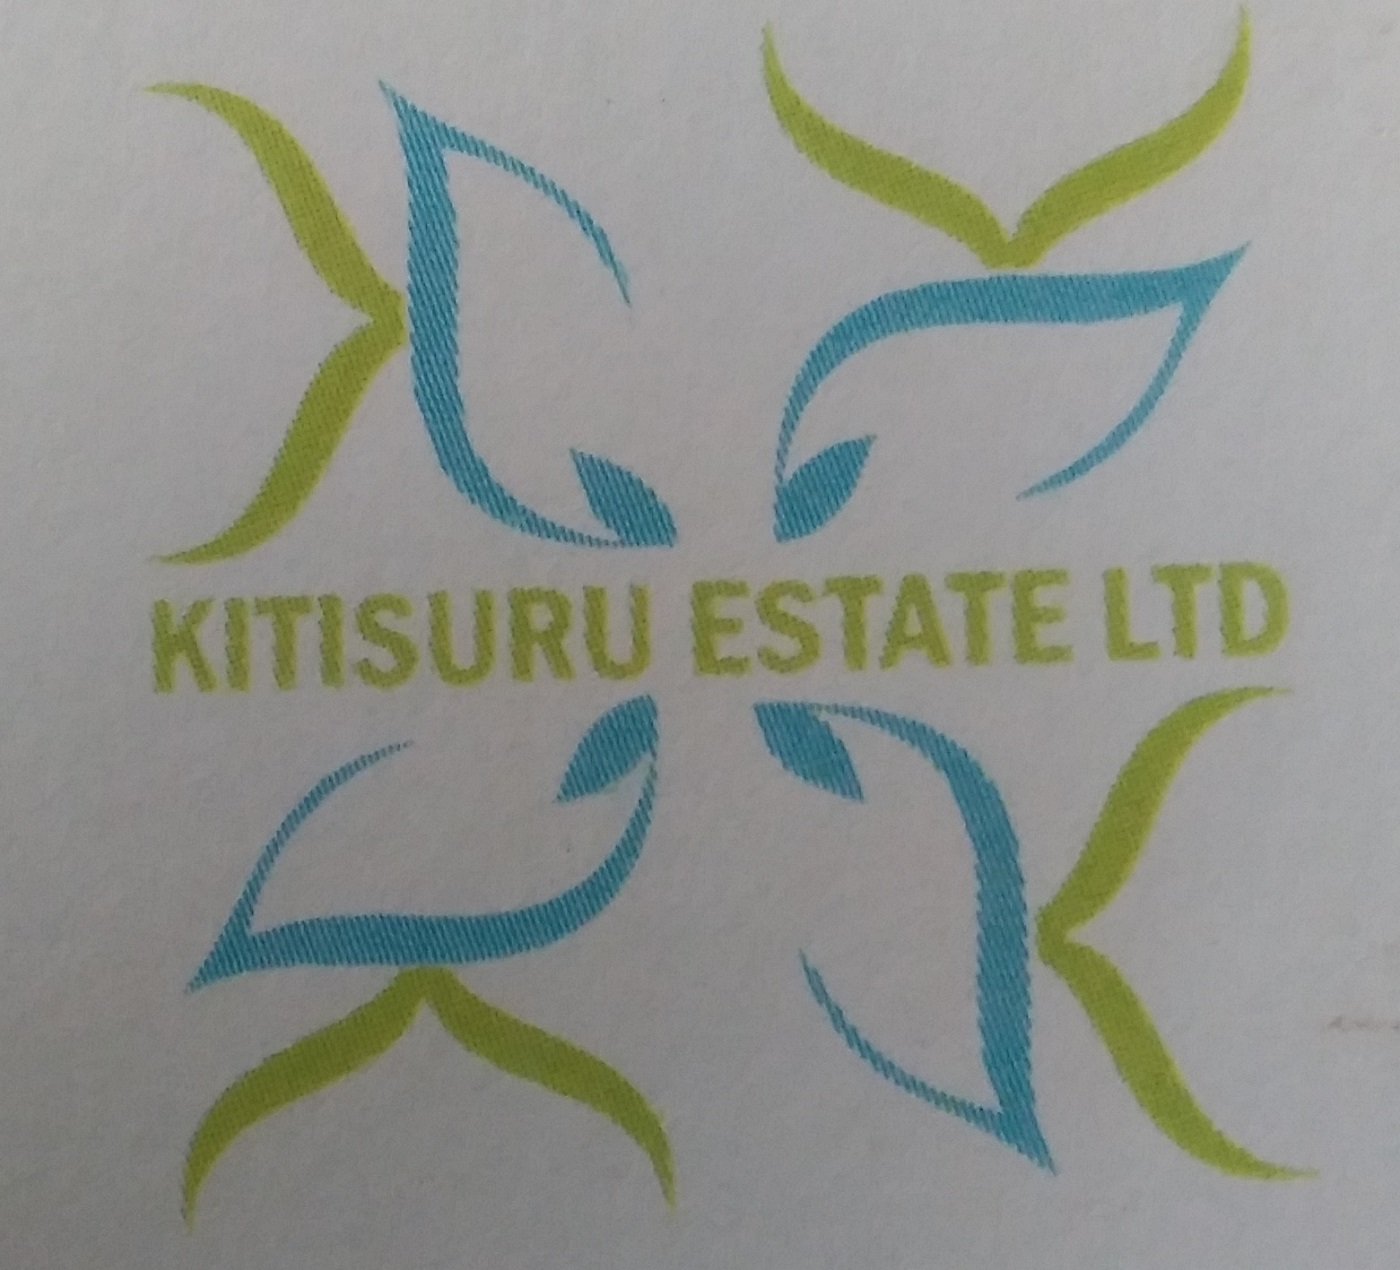 KITISURU ESTATE LTD primary image